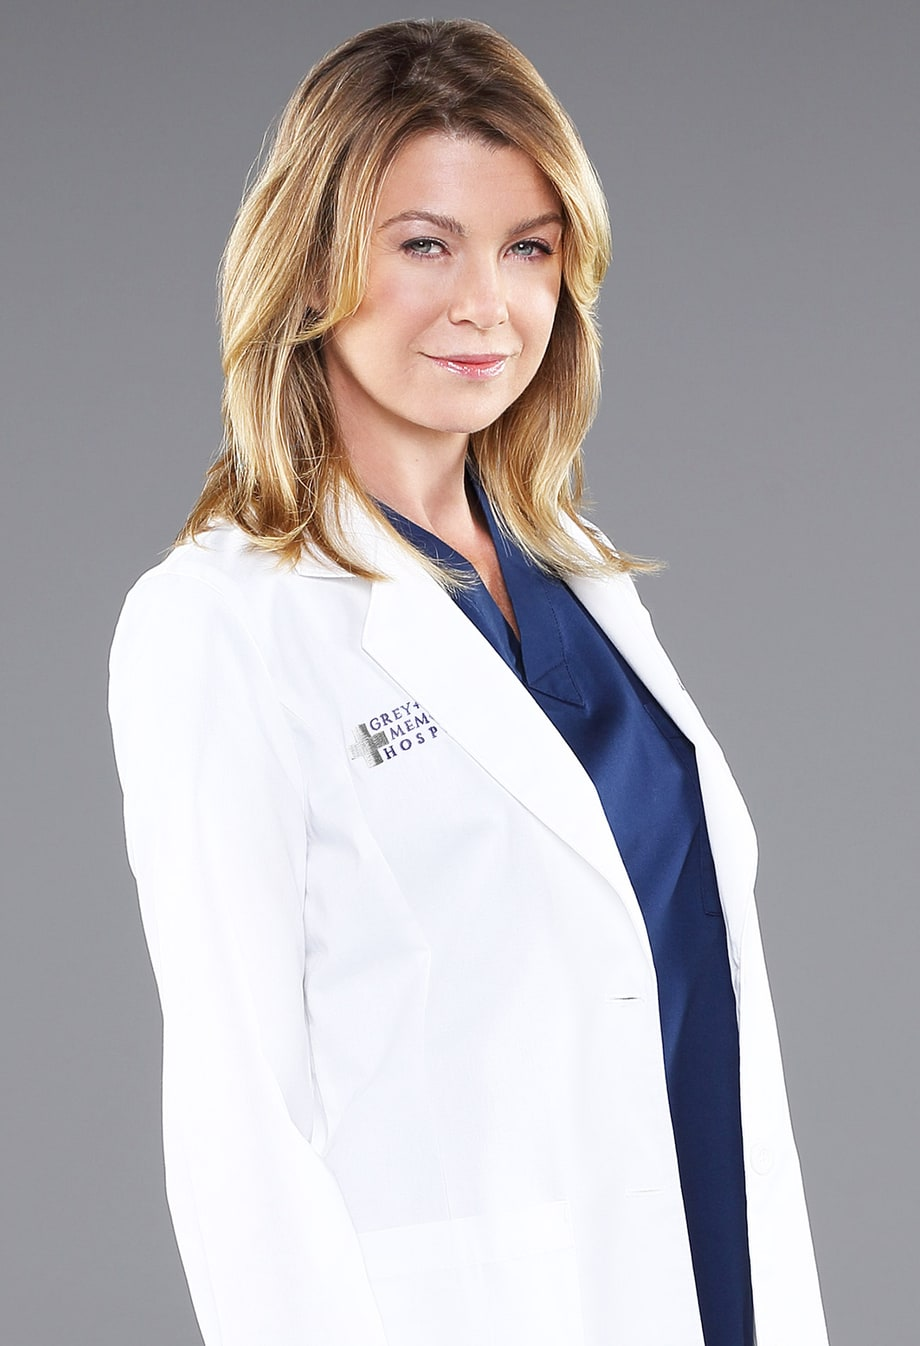 Life Lessons From Meredith Grey